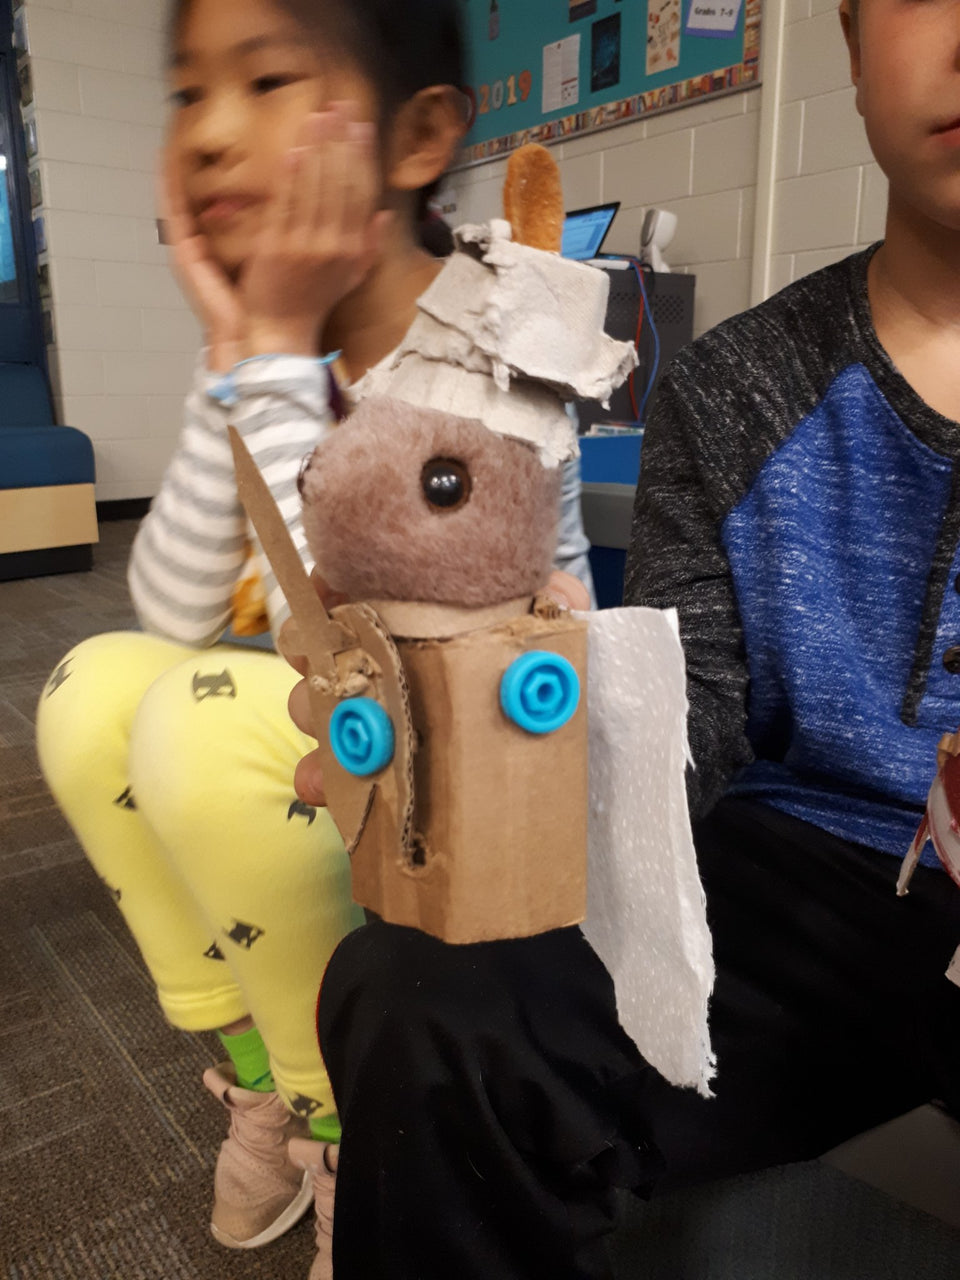 Making soft toy enhancements with cardboard and Makedo.